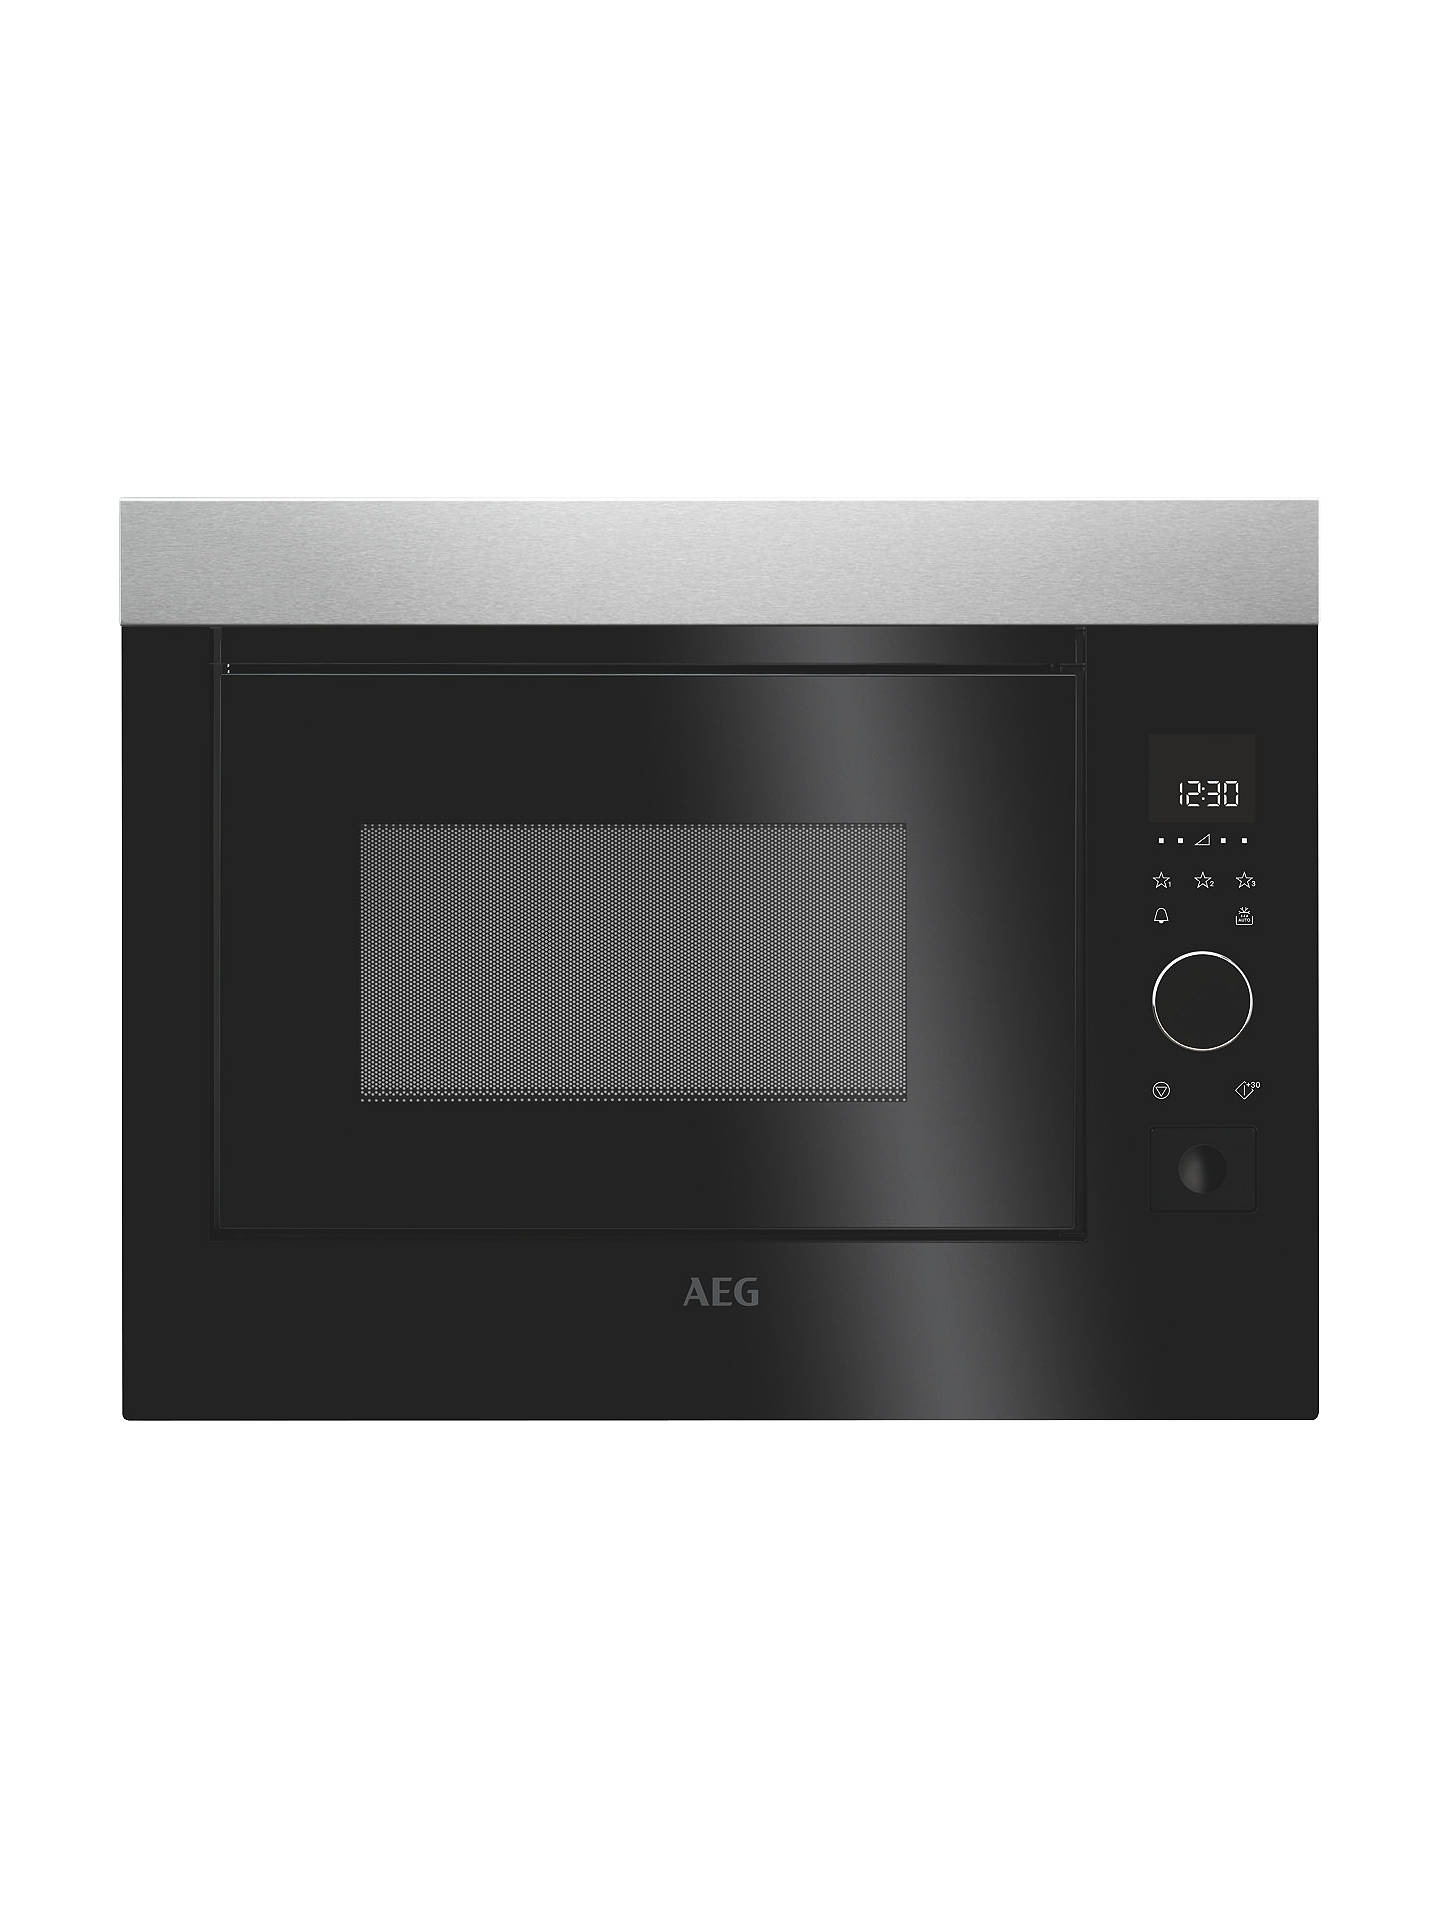 BuyAEG MBE2658S-M Solo Microwave, Black/Stainless Steel Online at johnlewis.com